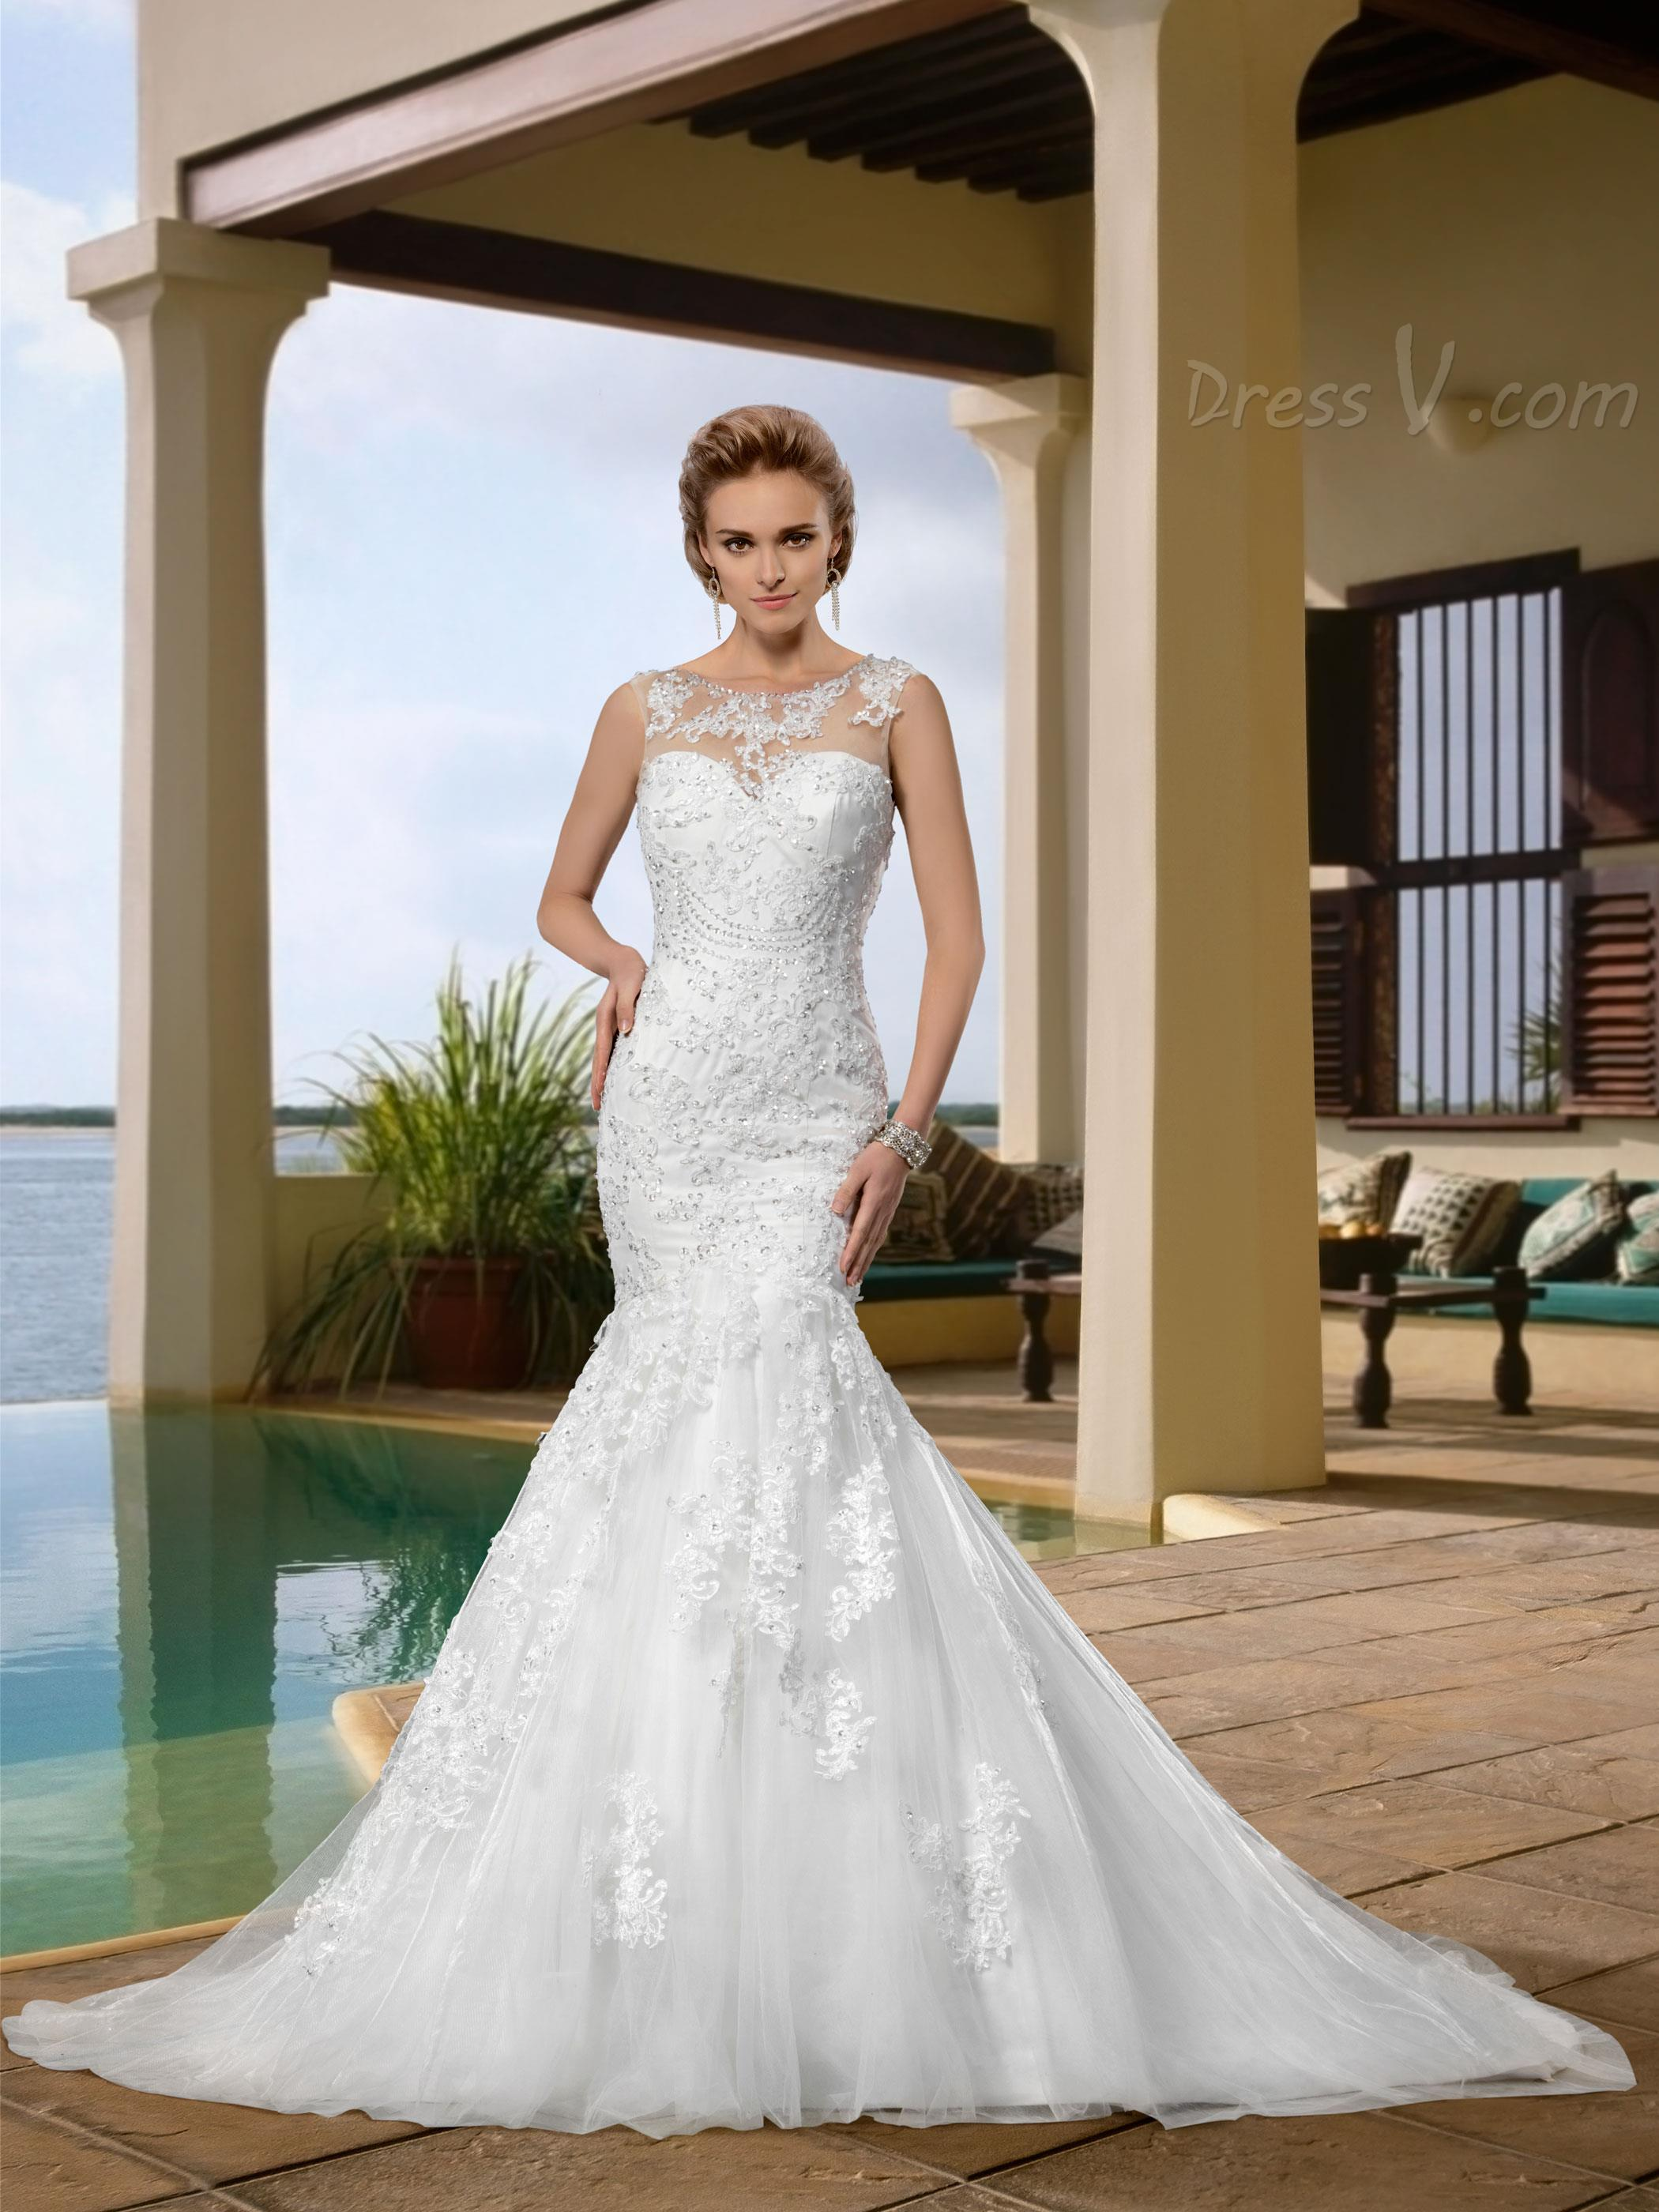 wedding gowns for sale in the philippines affordable wedding dresses Wedding Gowns For Sale In The Philippines 76